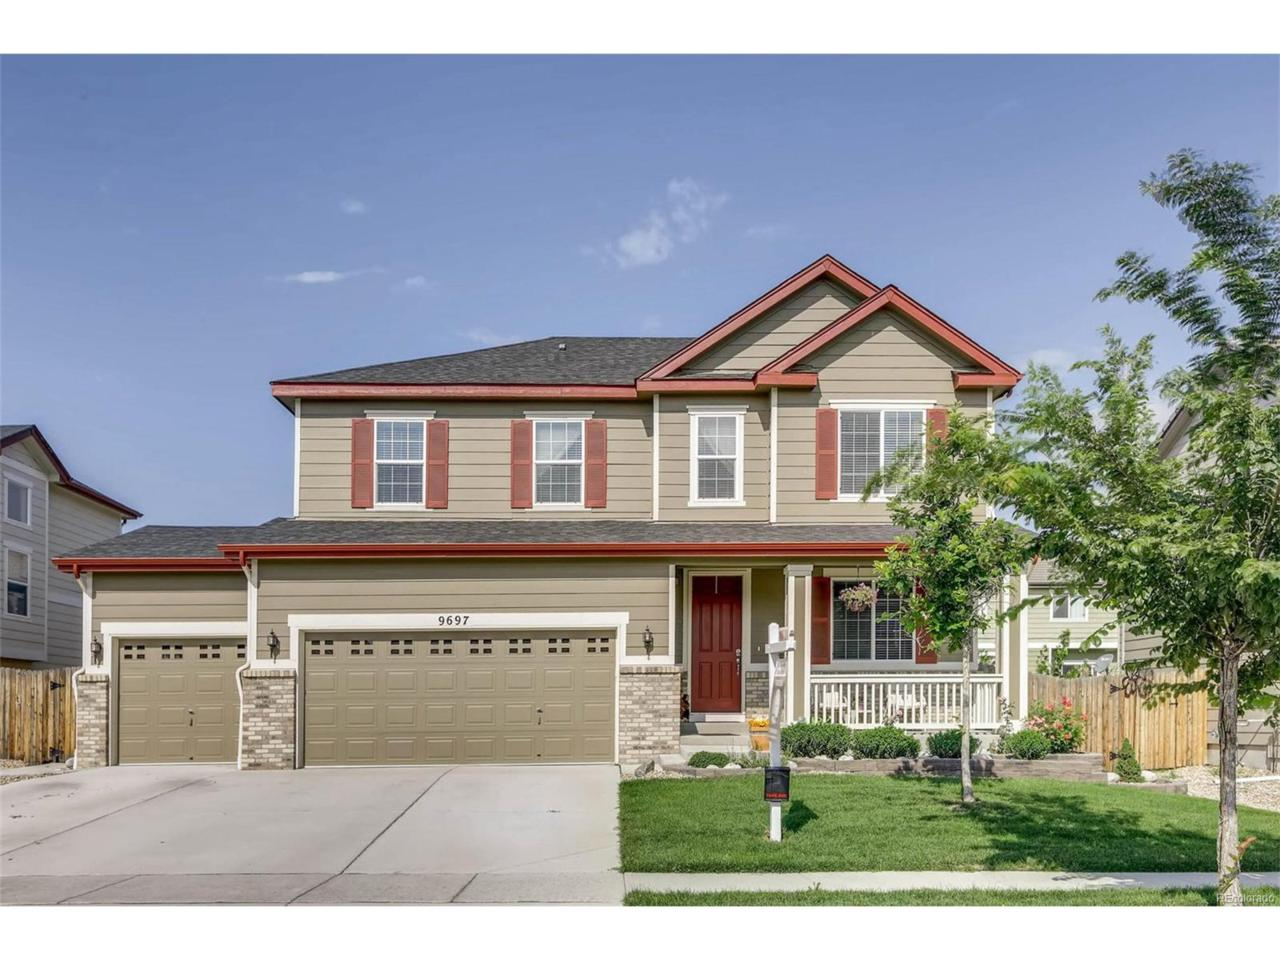 9697 Olathe Street, Commerce City, CO 80022 (MLS #2925790) :: 8z Real Estate